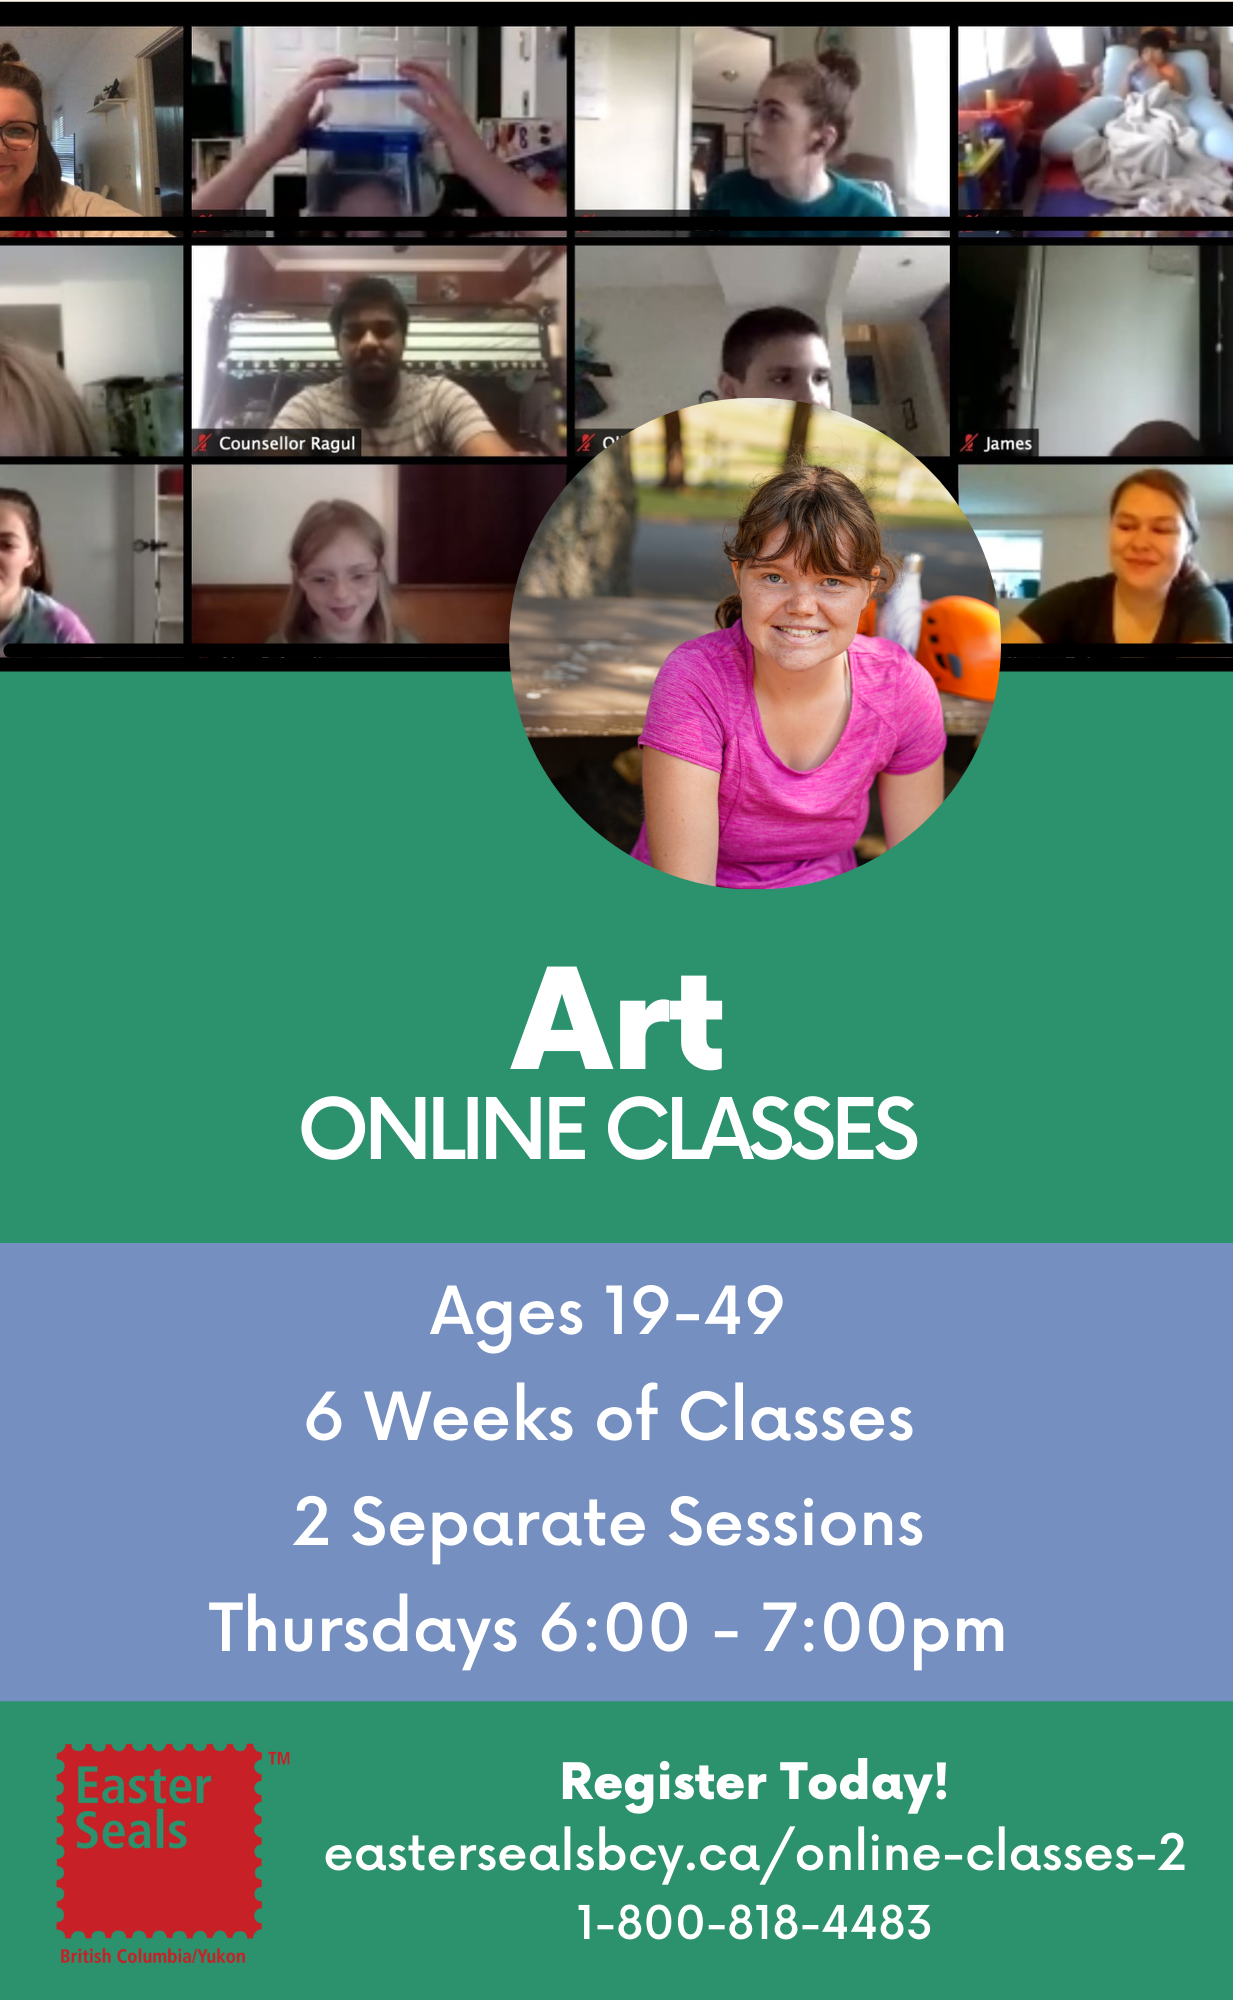 Art Classes for Ages 19-49